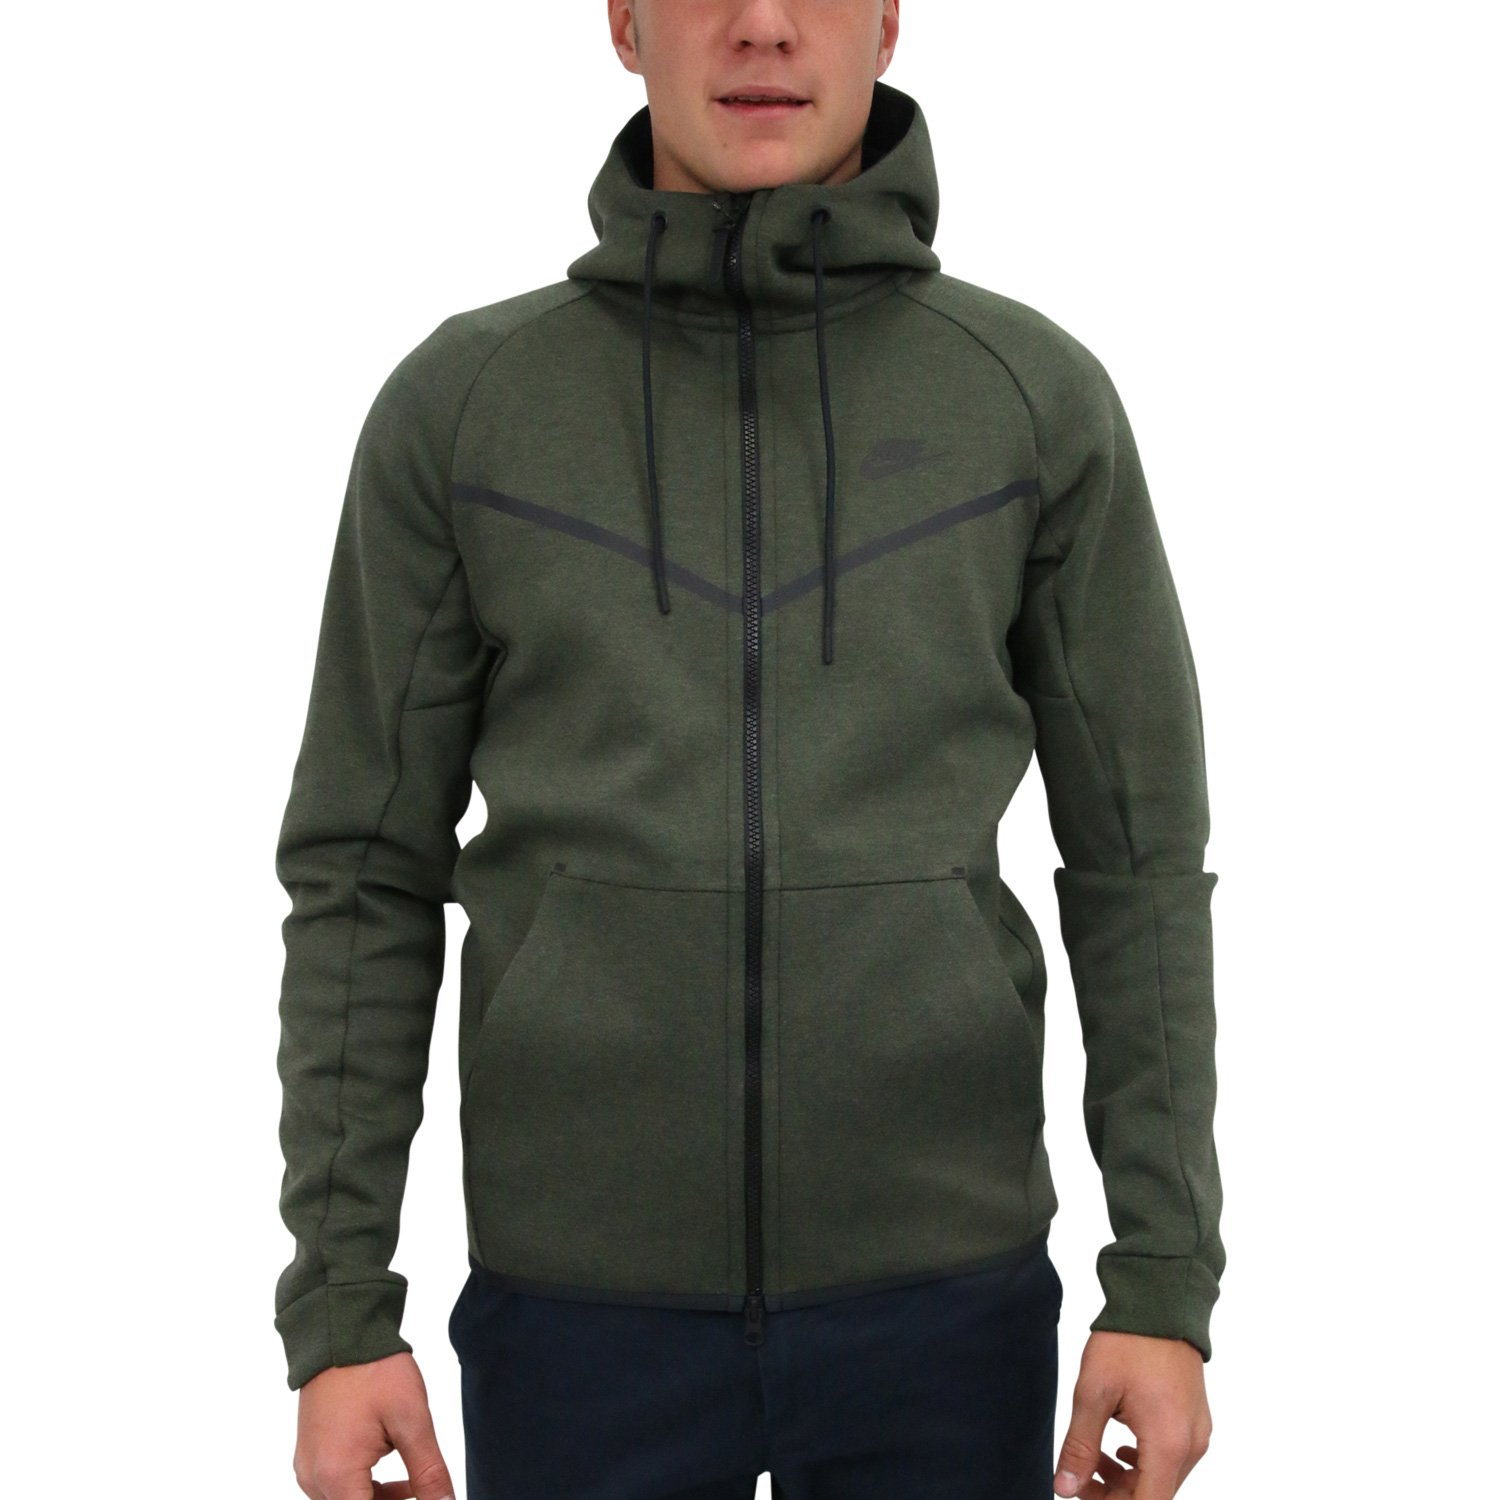 bc6cc56036 Galleon - Nike Sportswear Tech Fleece Windrunner Full-Zip Hoodie ...